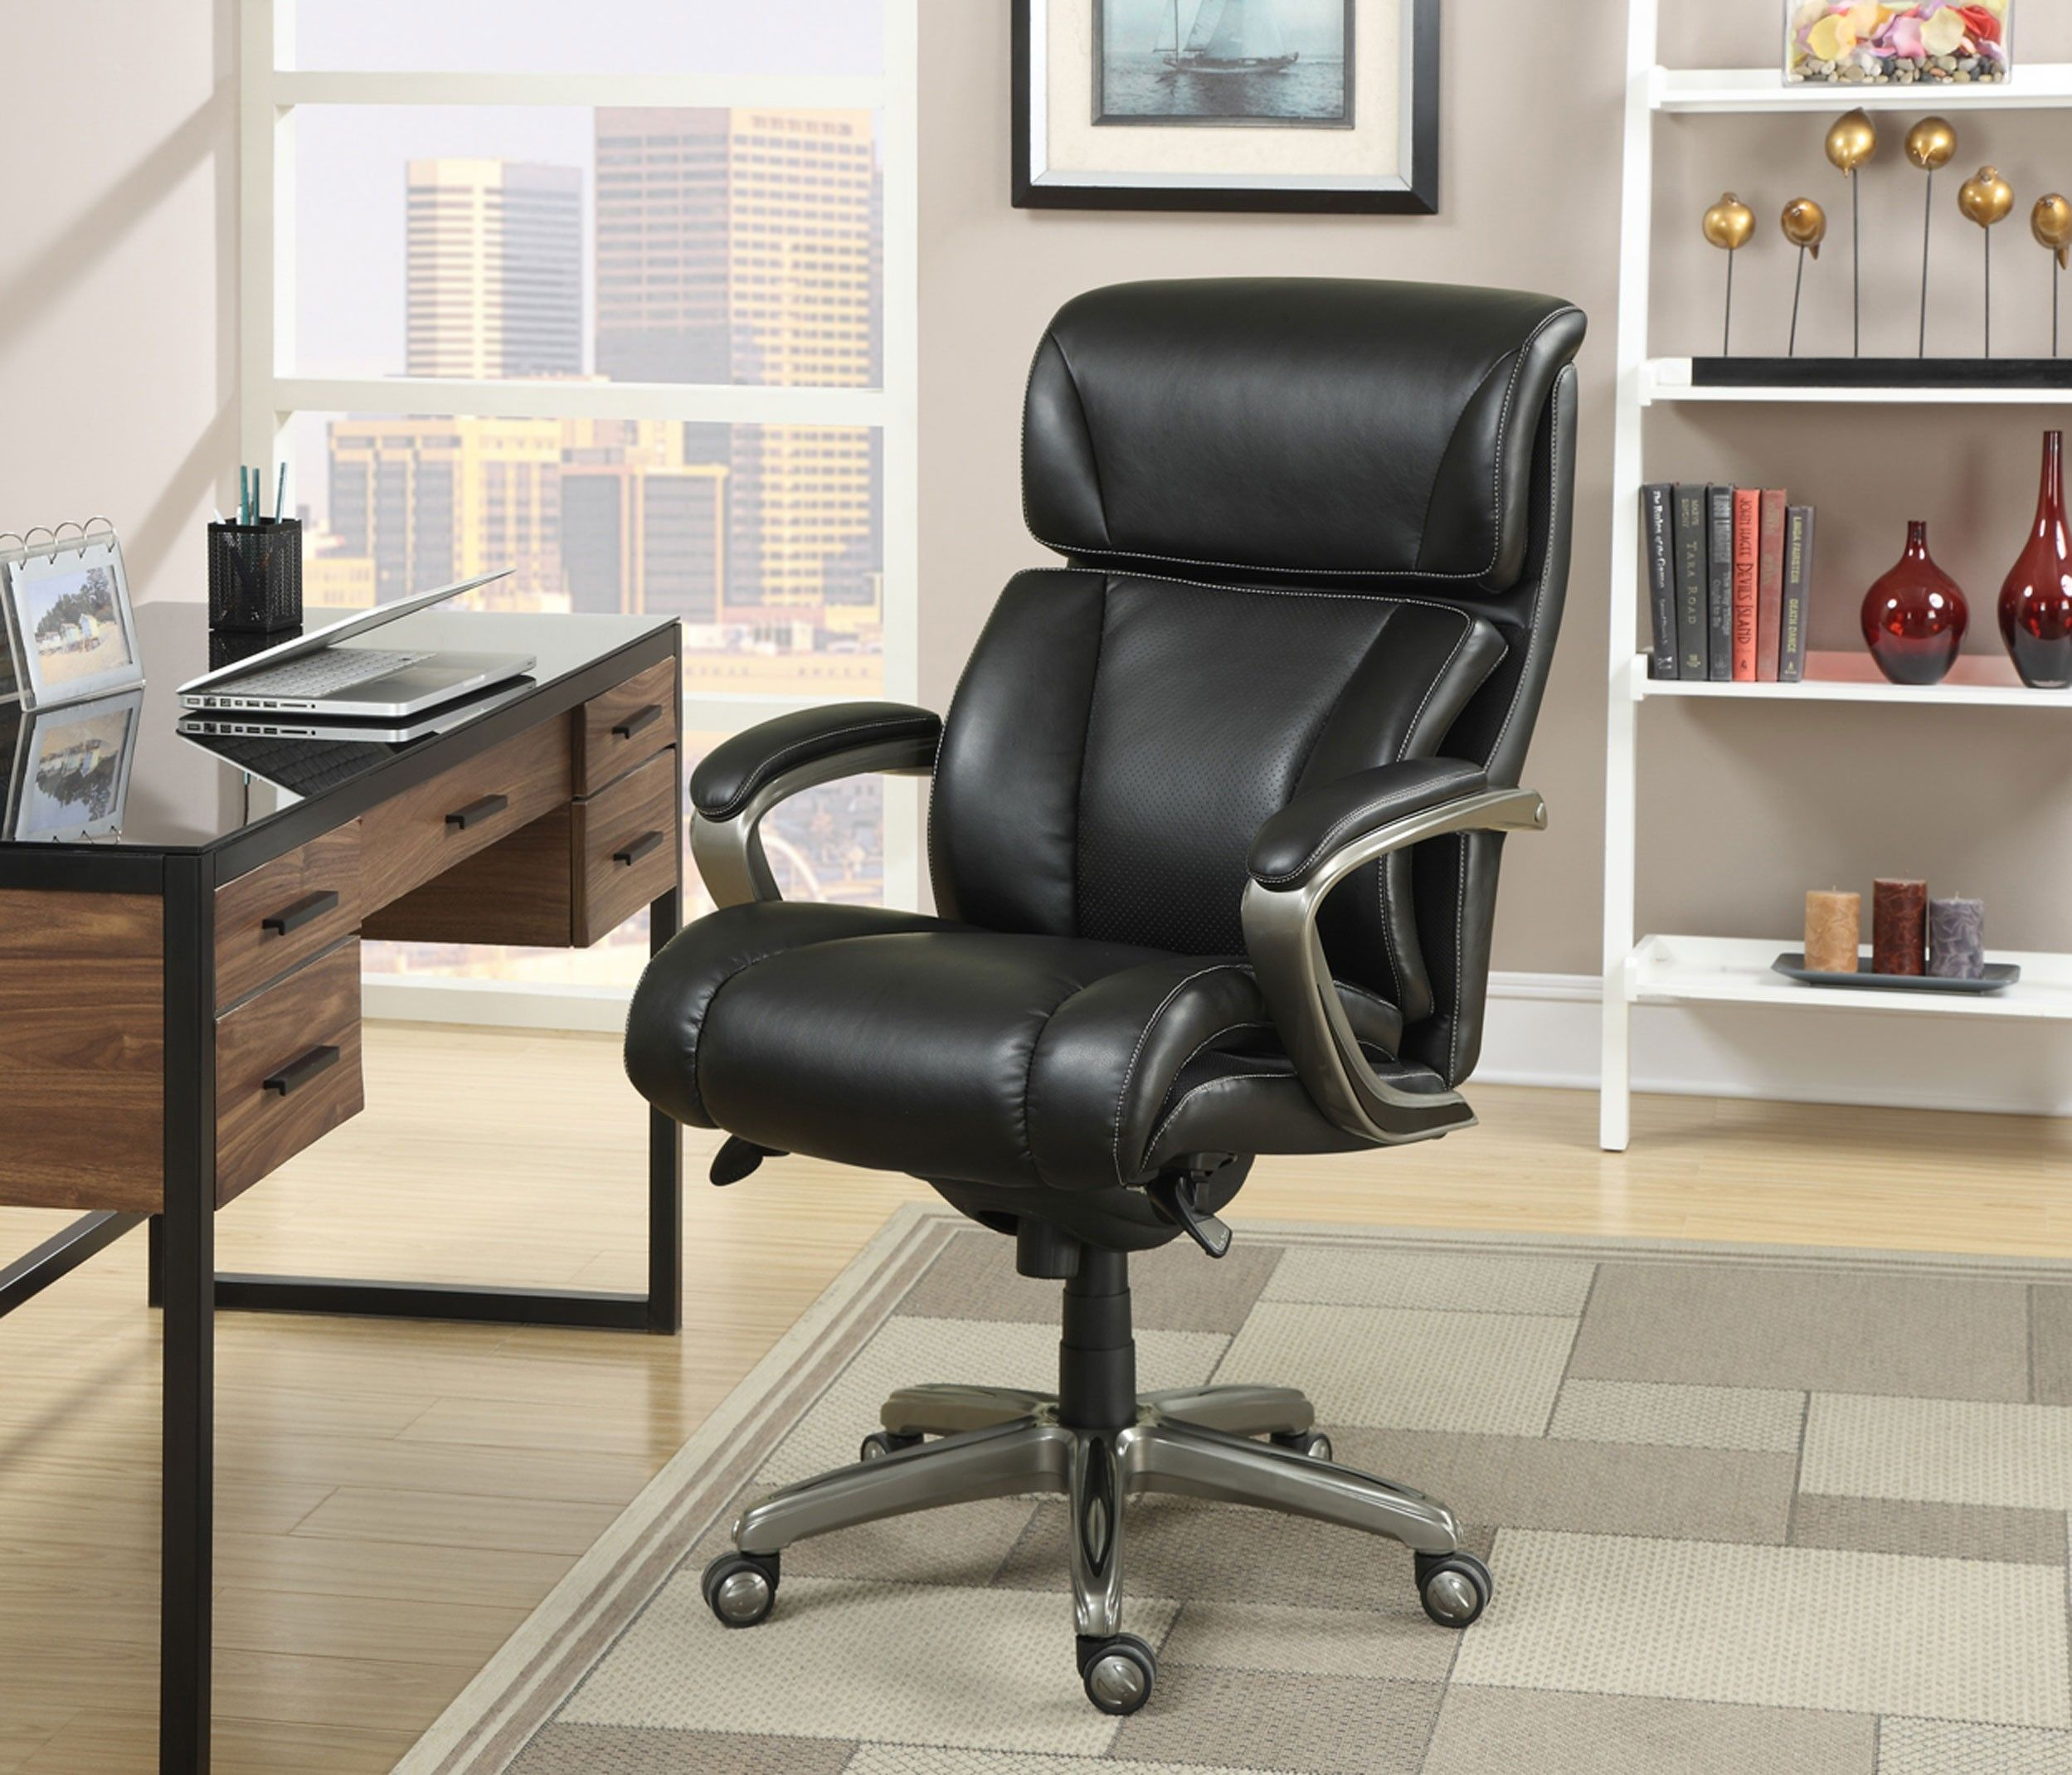 Are you ready to choose your perfect office chair? Big